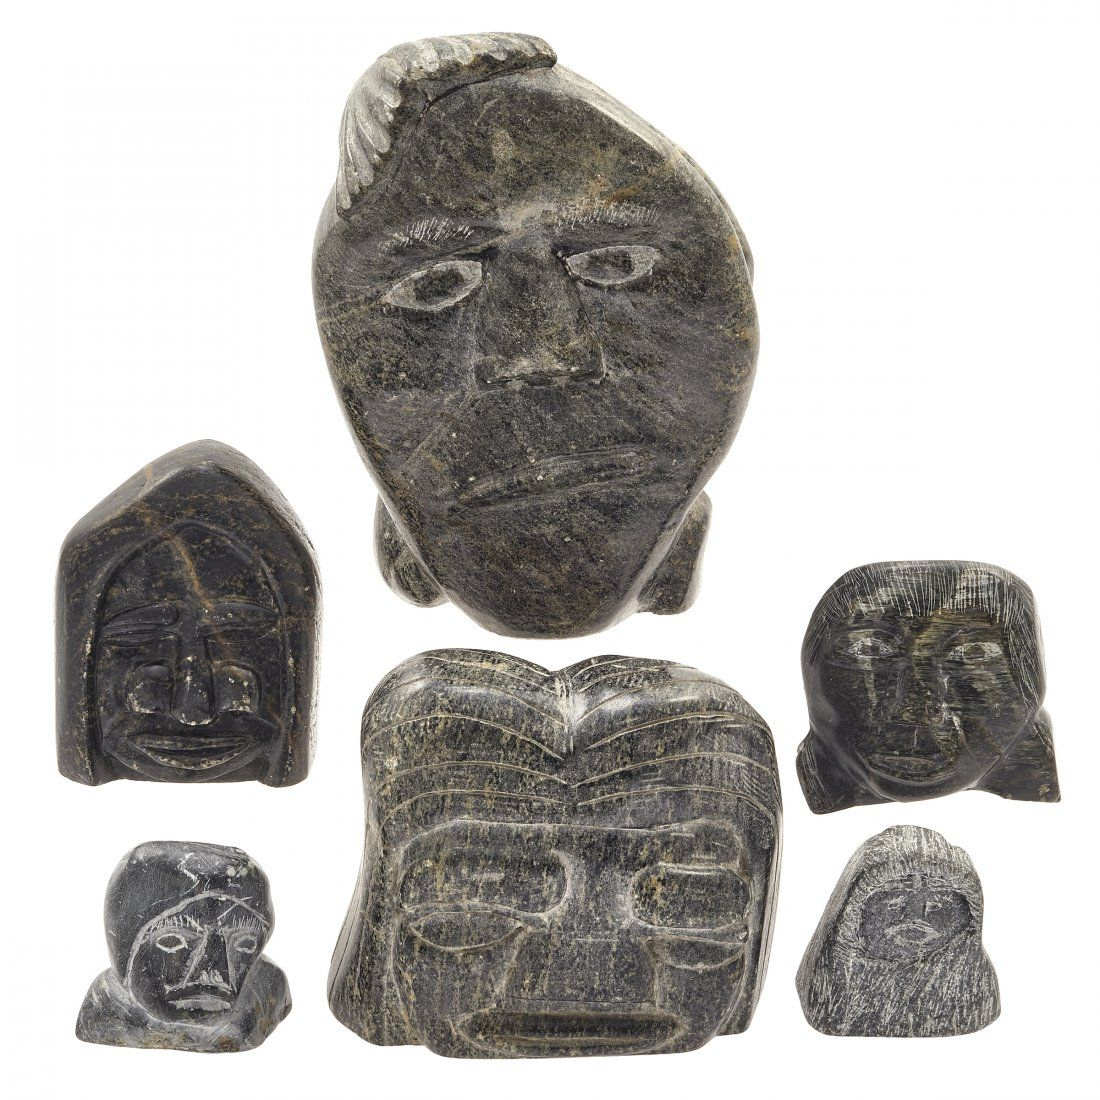 Six Inuit Stone Carvings